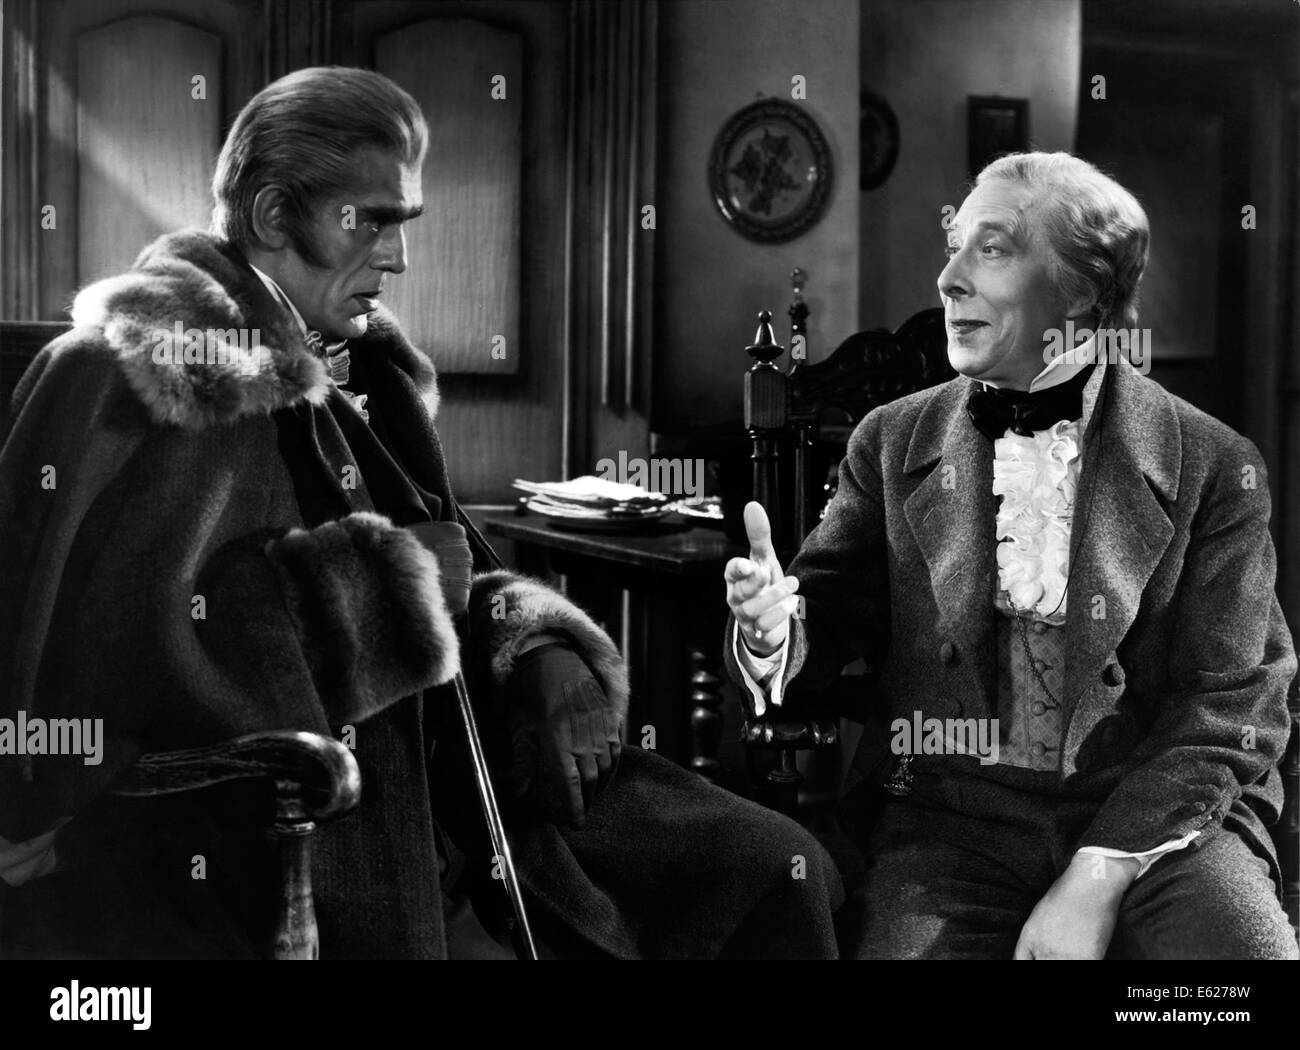 THE HOUSE OF ROTHSCHILD - With George Arliss, Boris Karloff - Directed by Alfred Werker - United Artists, 1934 - Stock Image